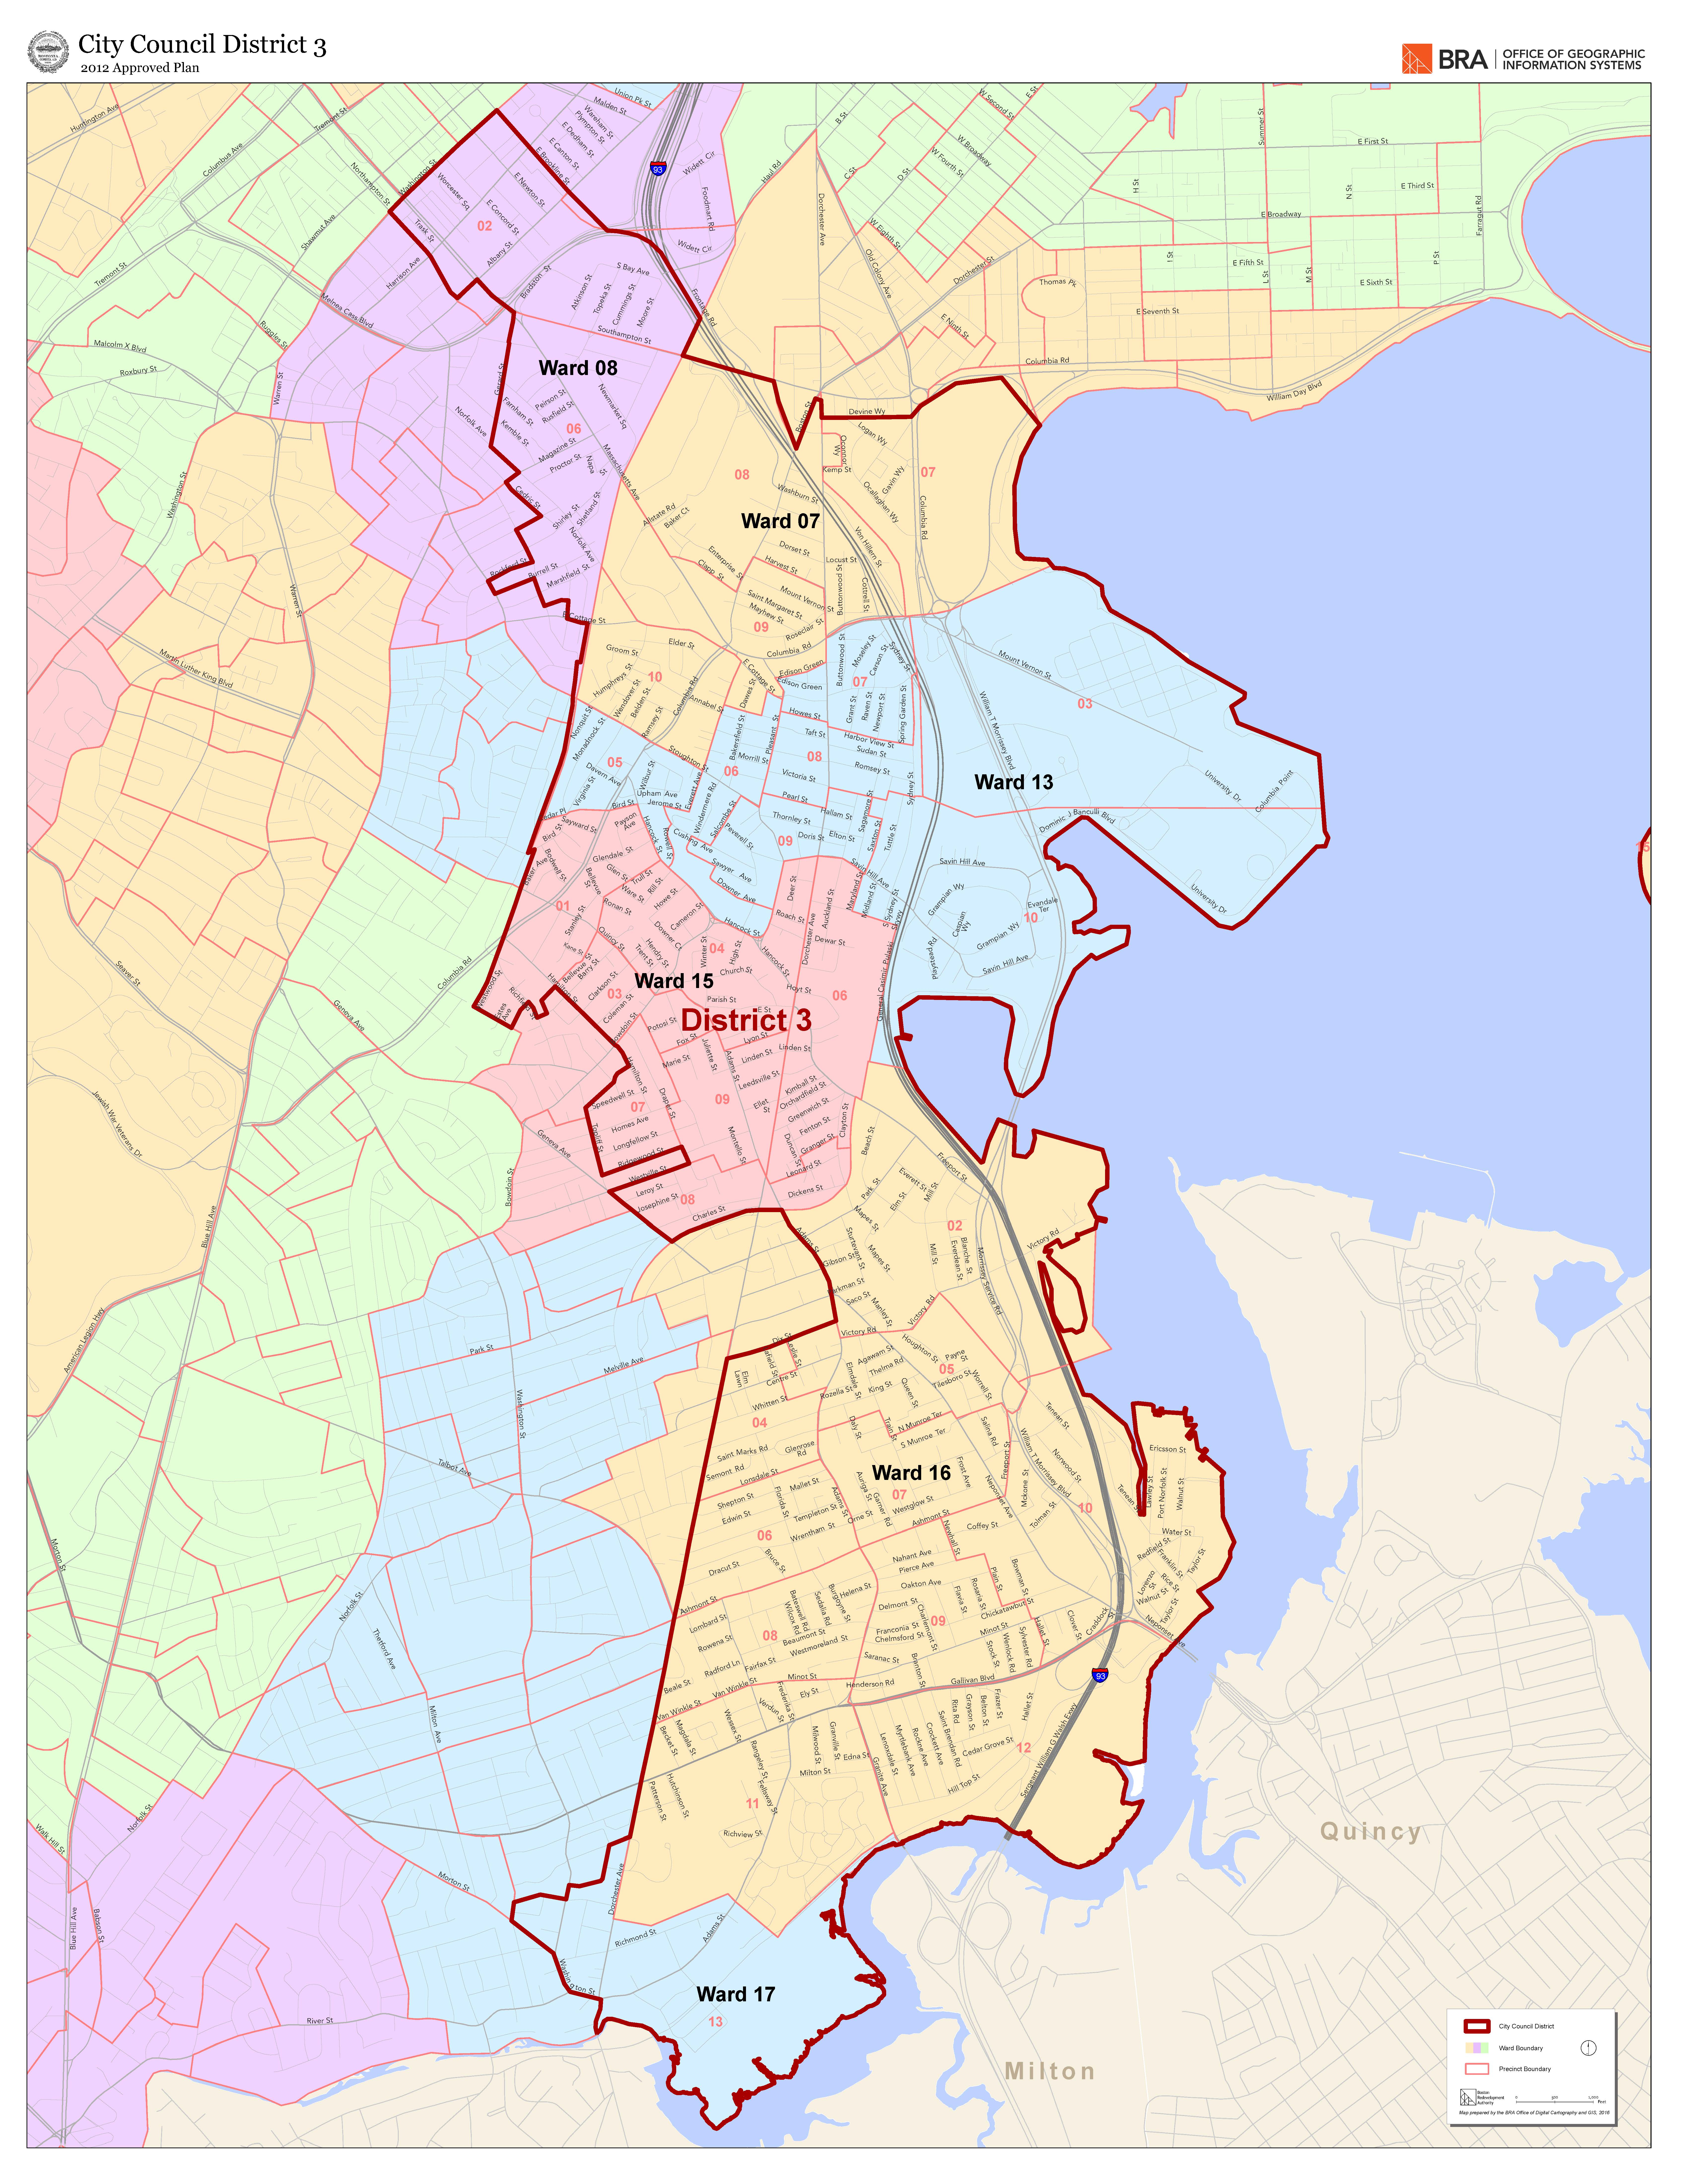 Electoral Maps Boston Planning Development Agency - Us house district 13 map